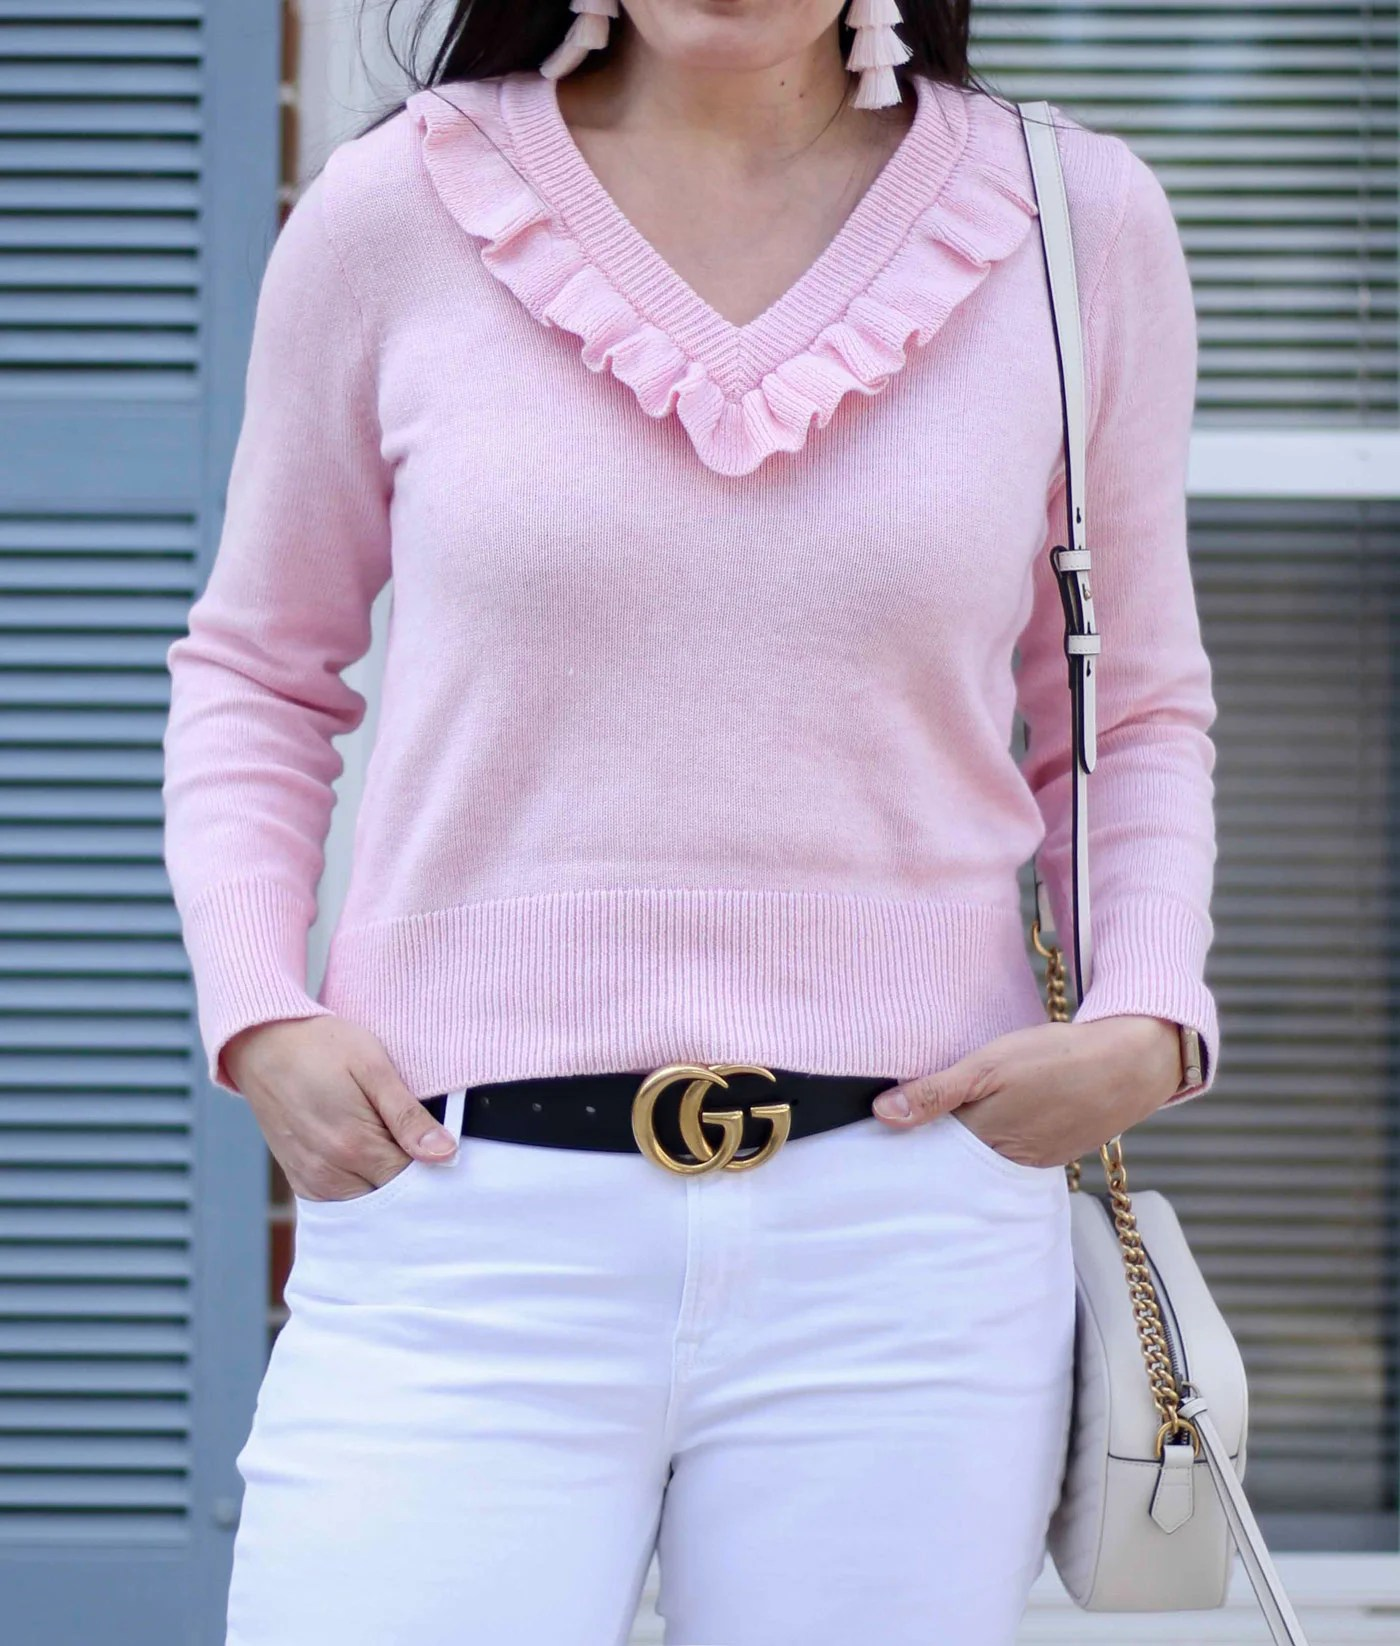 Pink Ruffle Sweater And Tassel Earrings 8f634d2855af